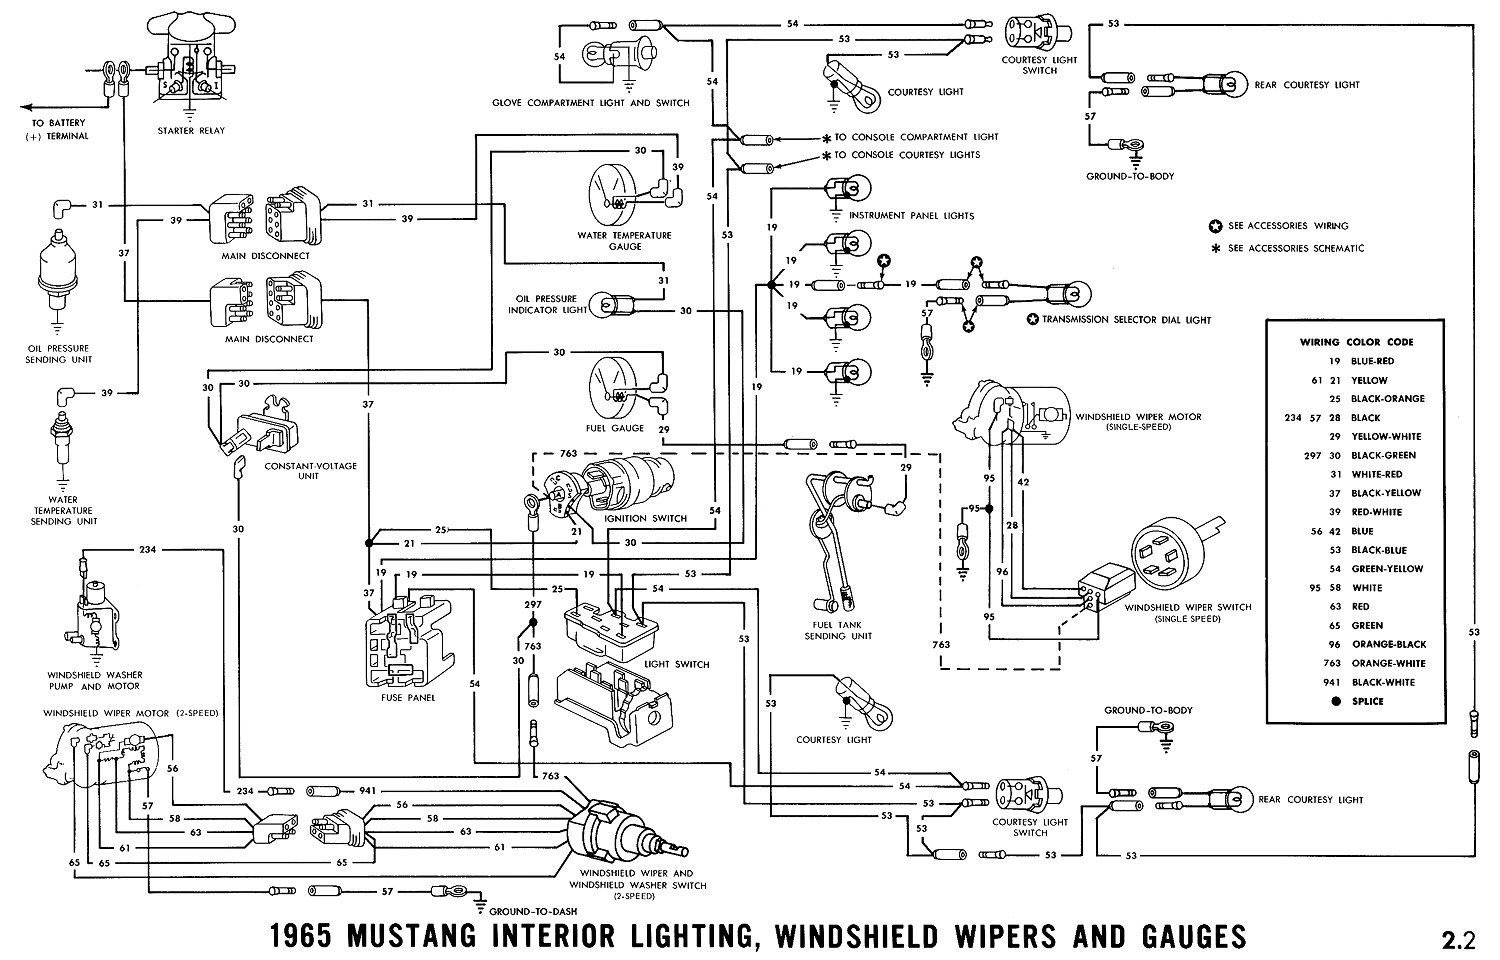 1965g 1965 mustang wiring diagrams average joe restoration 1966 mustang wiring diagrams electrical schematics at nearapp.co